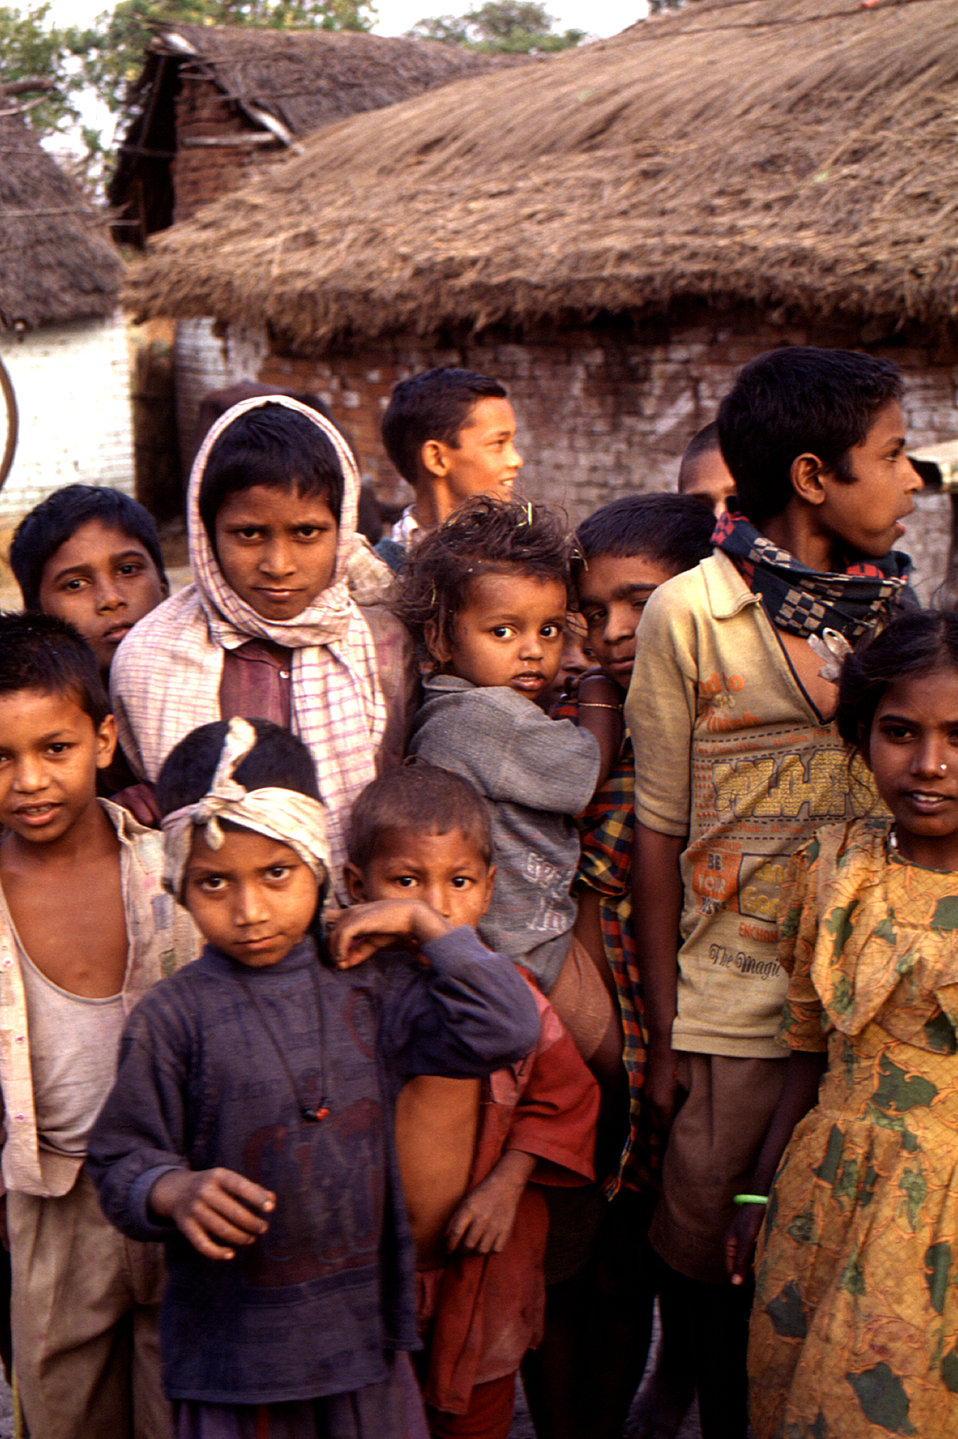 This 2000 photograph depicted a group of children who were residents of one of the towns into which the Stop Transmission of Polio (Stop) te